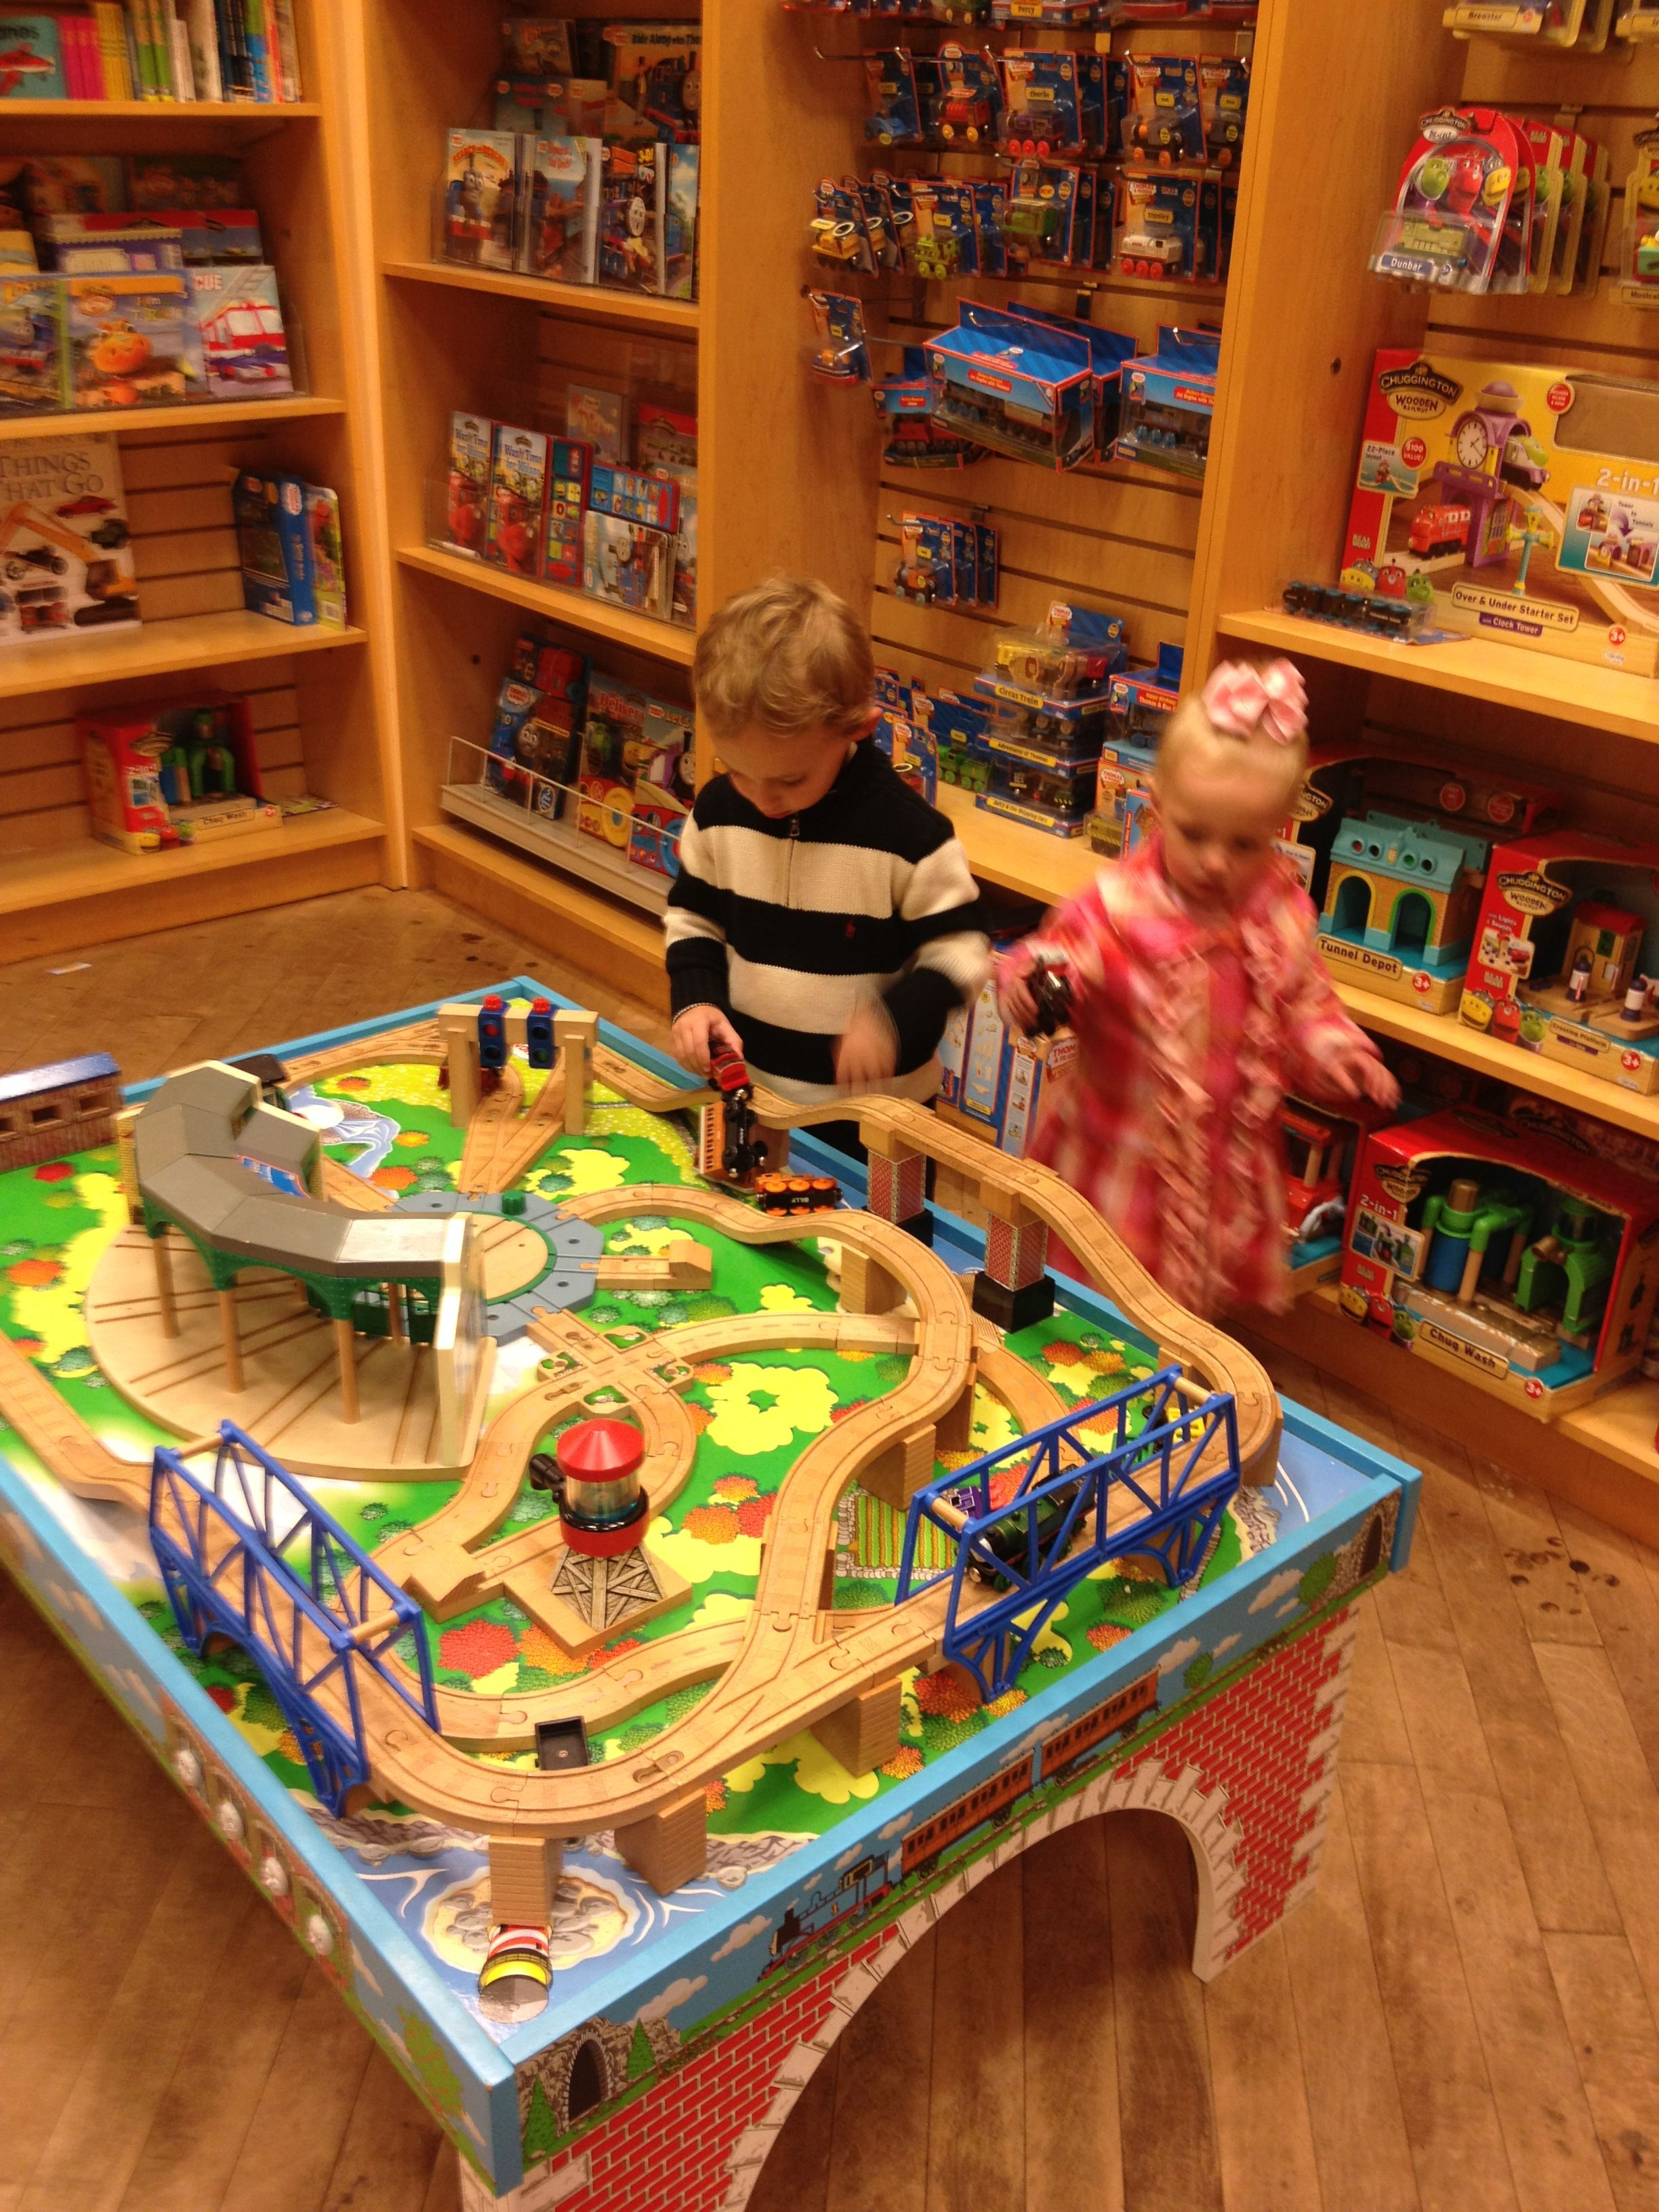 Train table at Barnes & Noble (With images) Wooden train